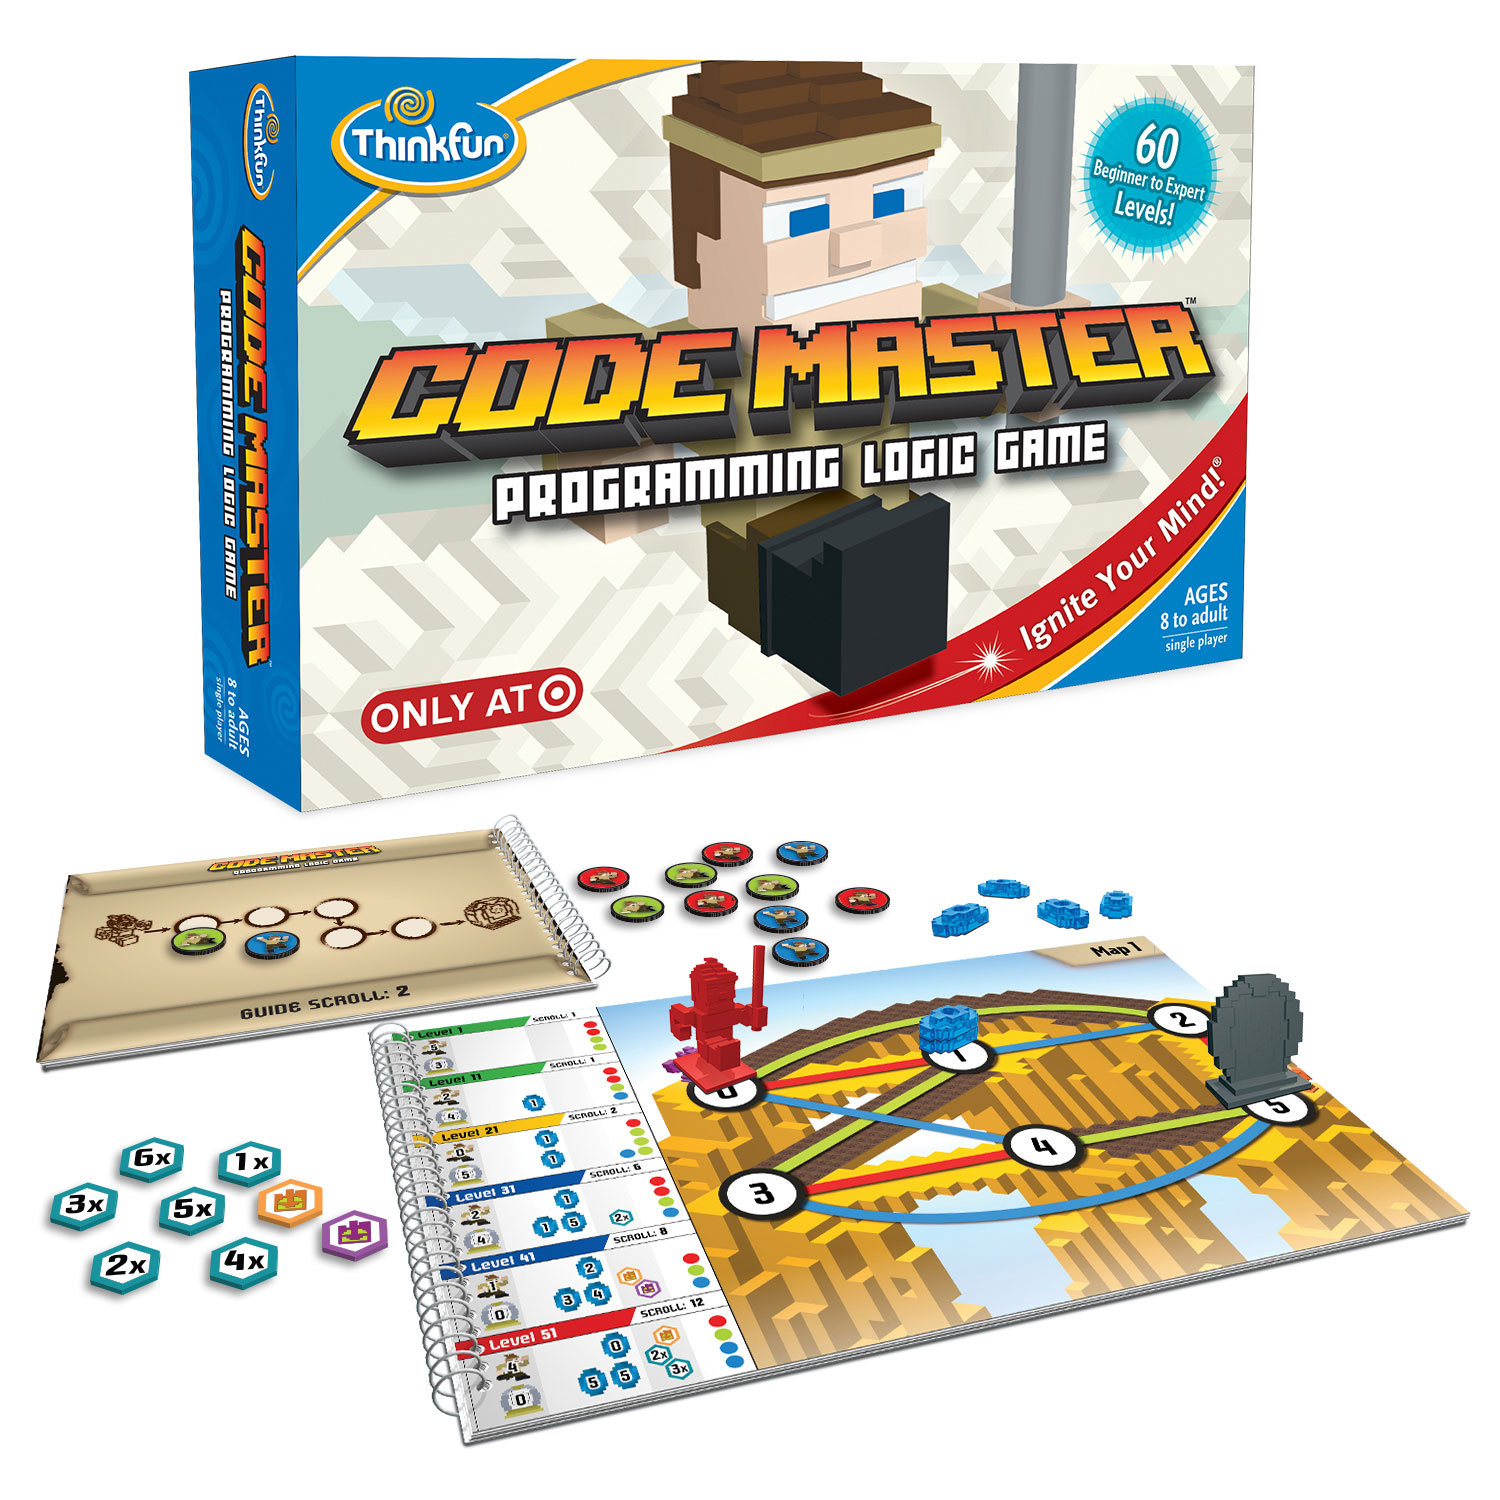 New Code Master Game Teaches Kids Coding Logic – No puter